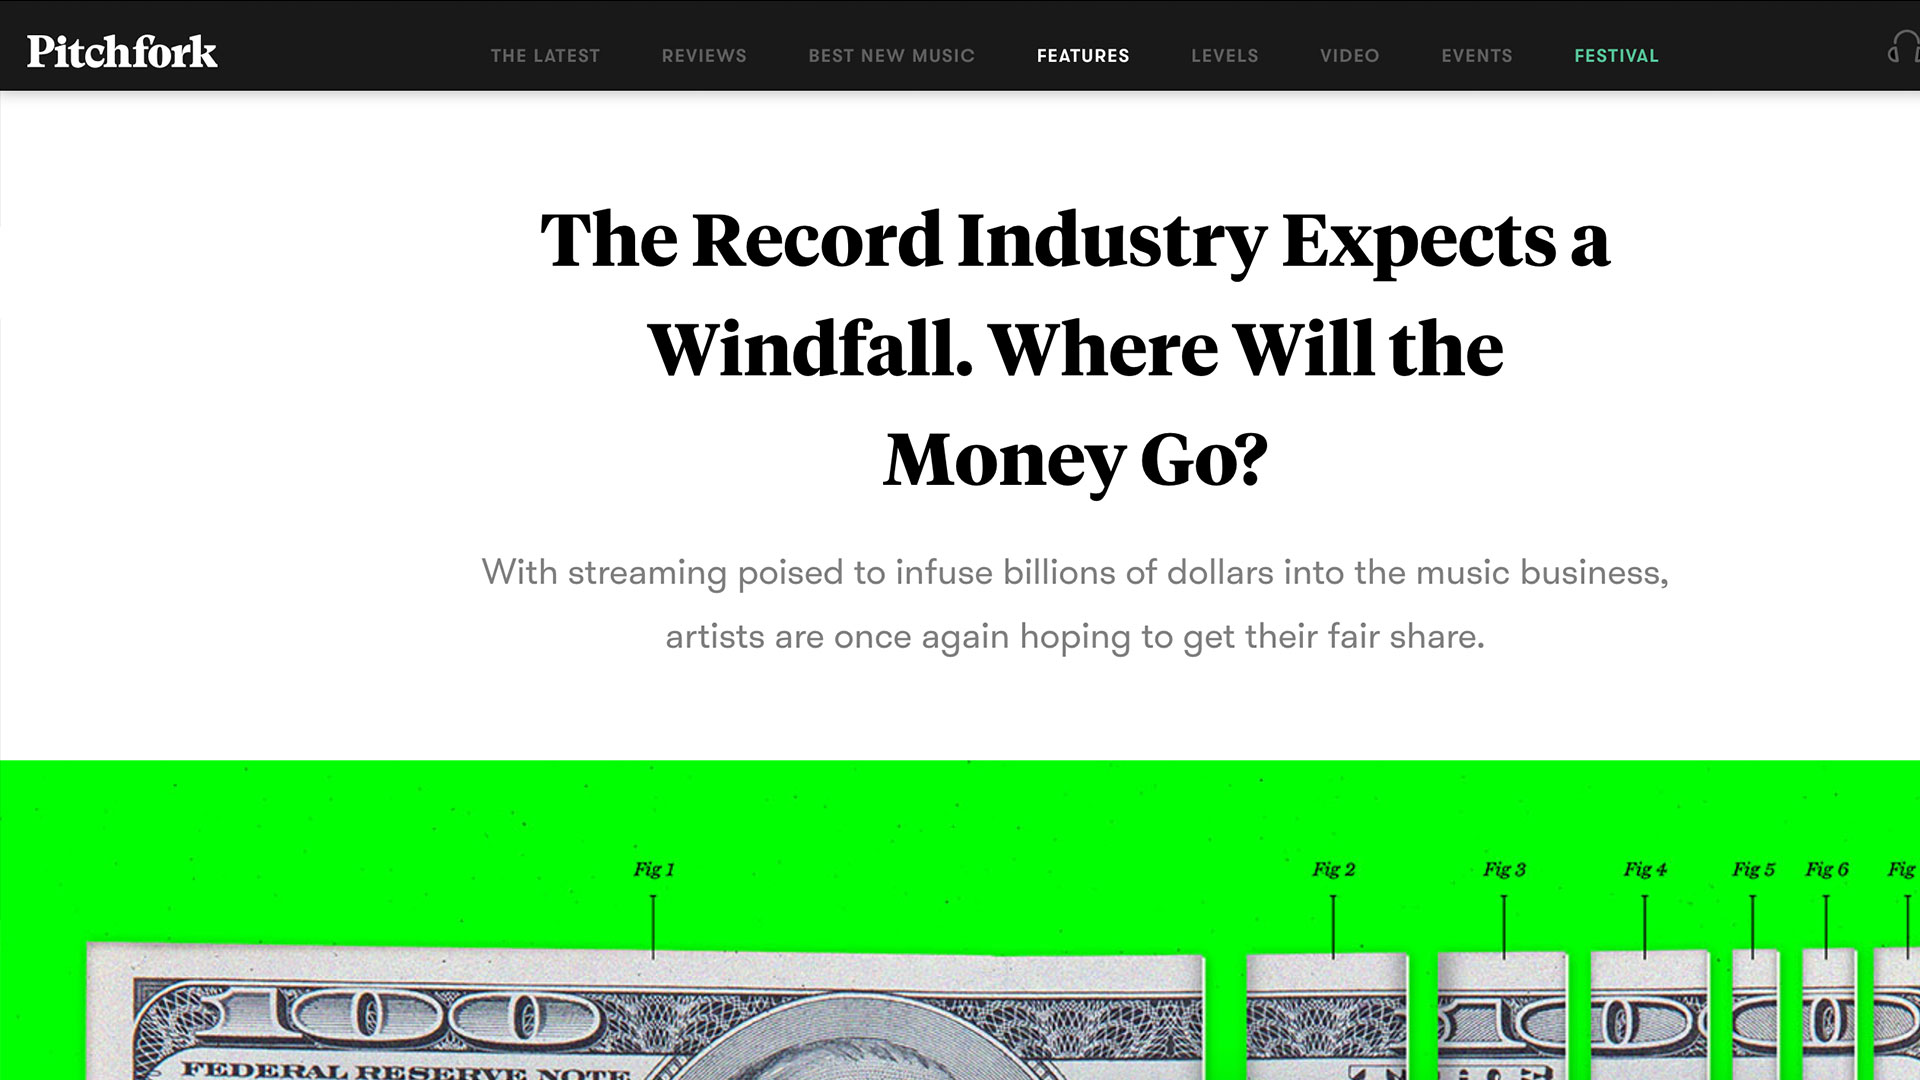 Fairness Rocks News The Record Industry Expects a Windfall. Where Will the Money Go?